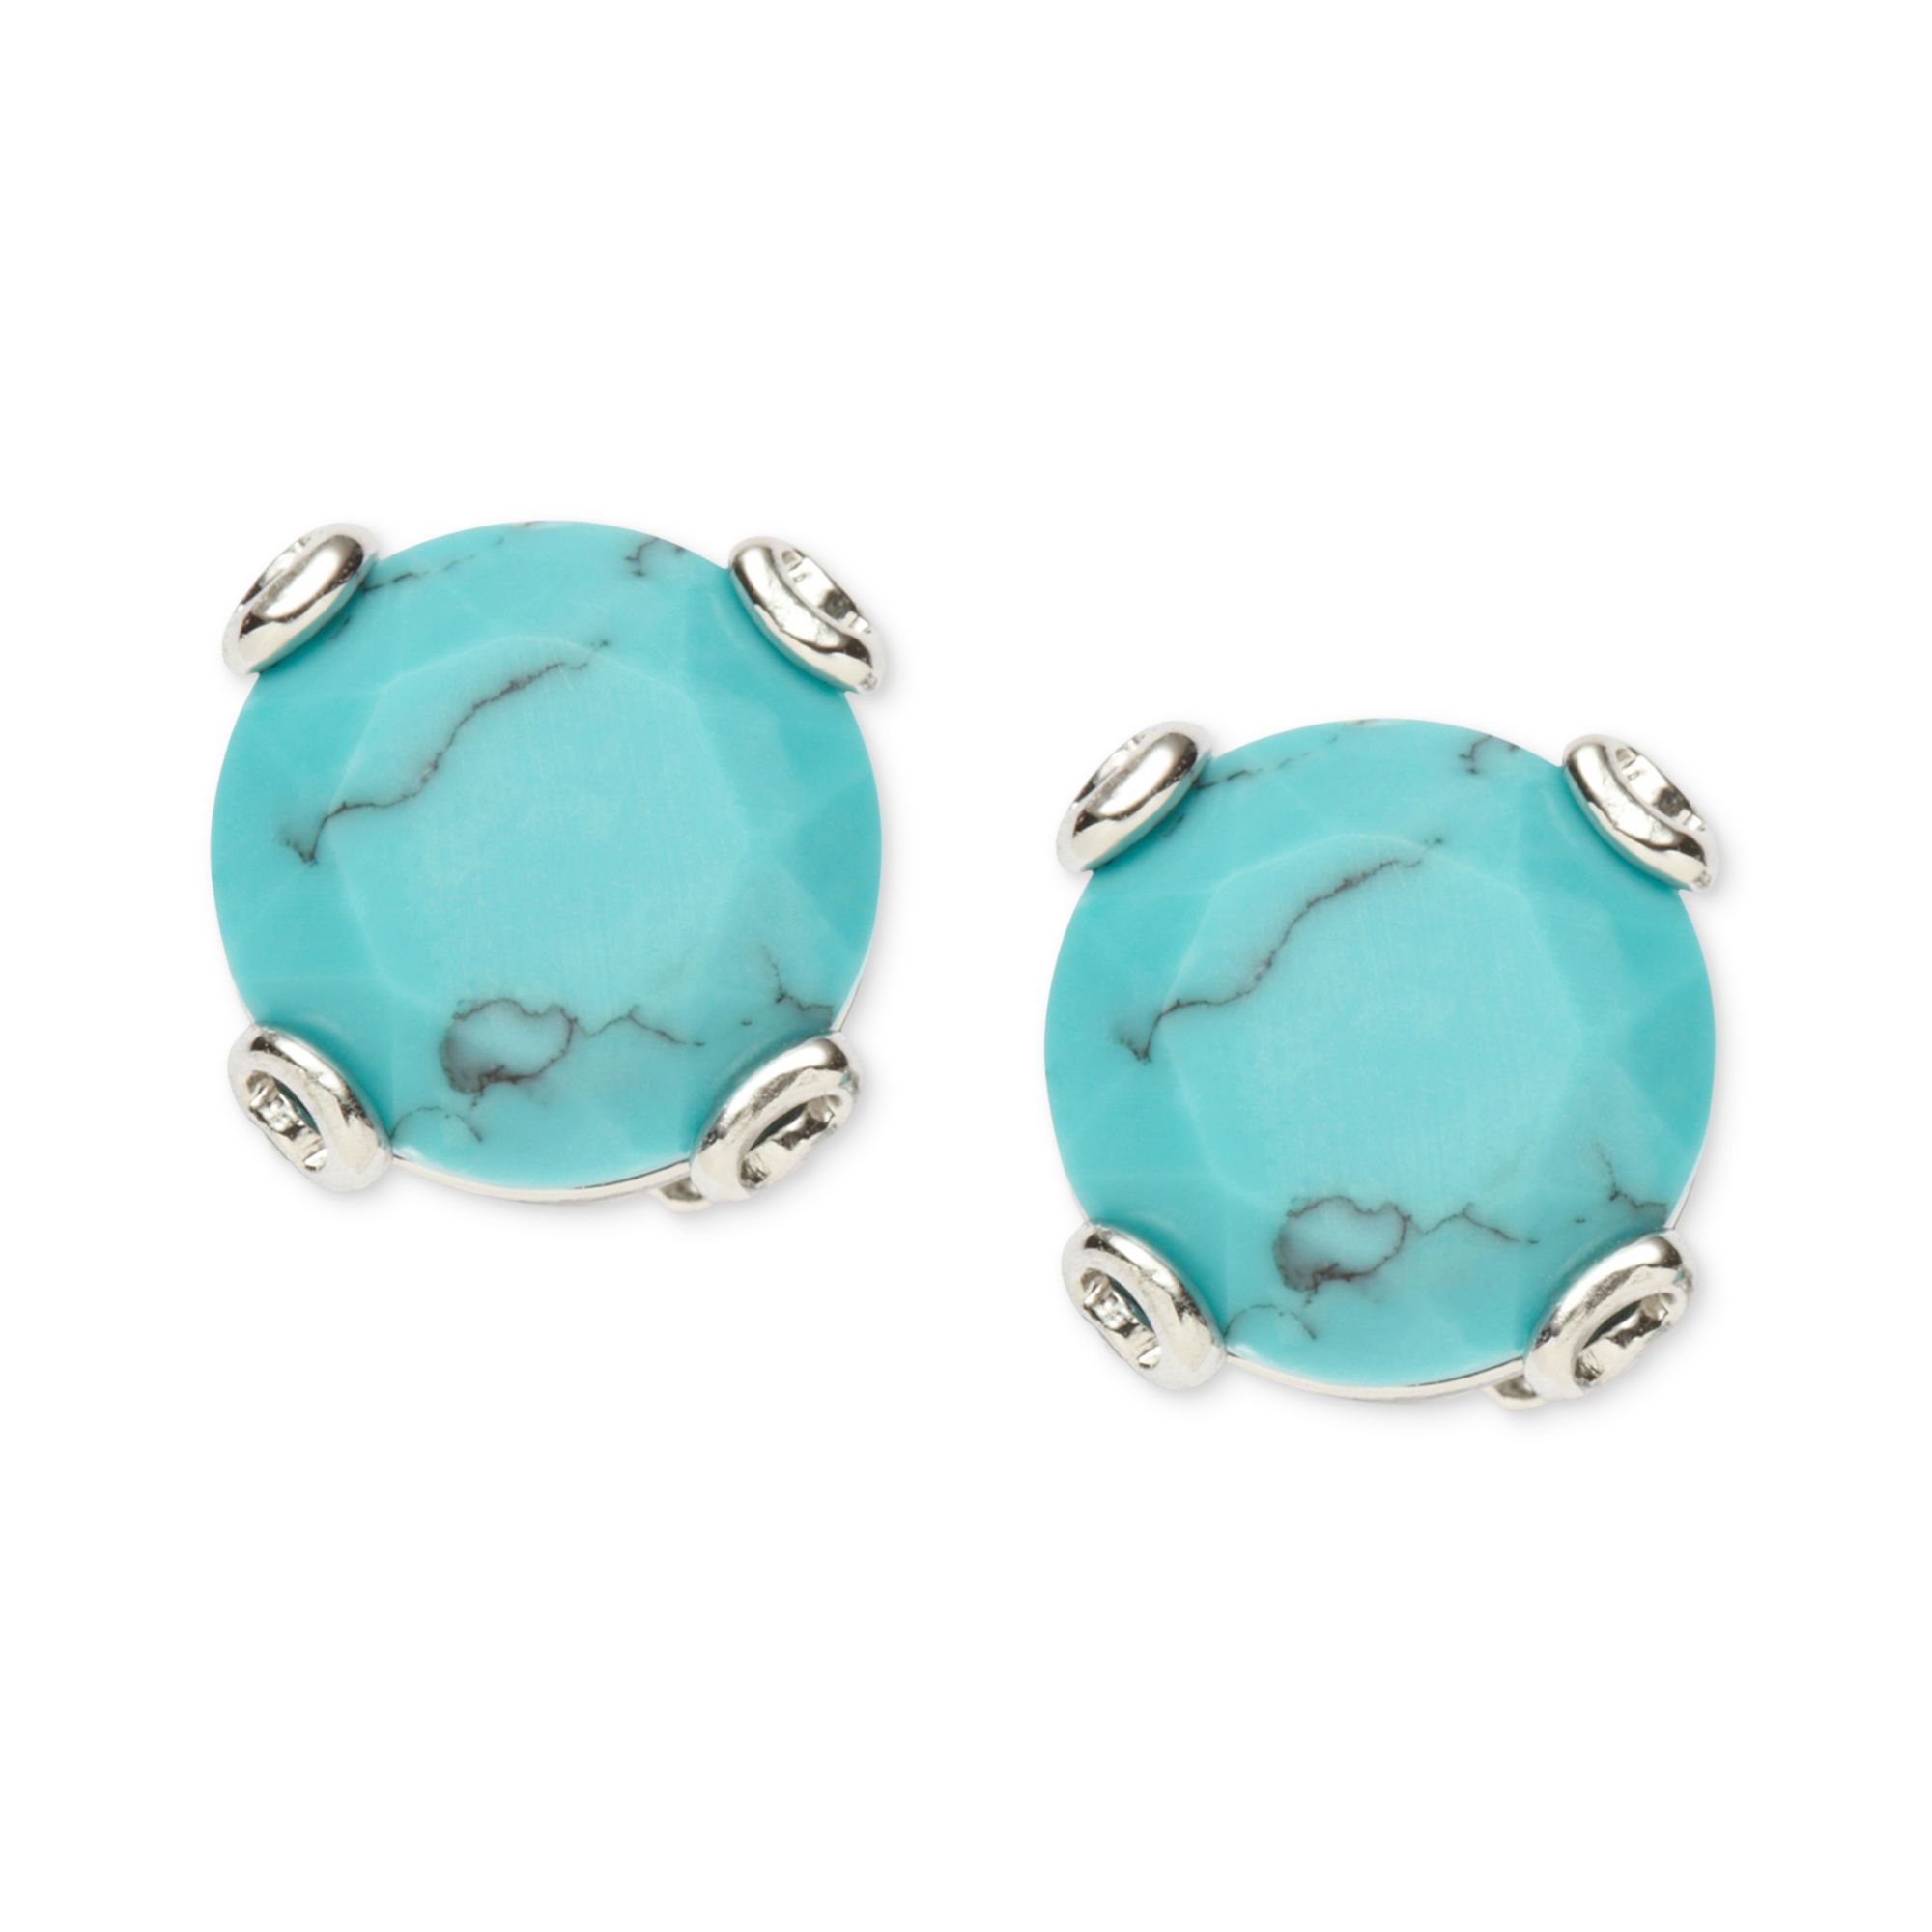 earrings gold jewellery bar stud bonas oliver taryn turquoise